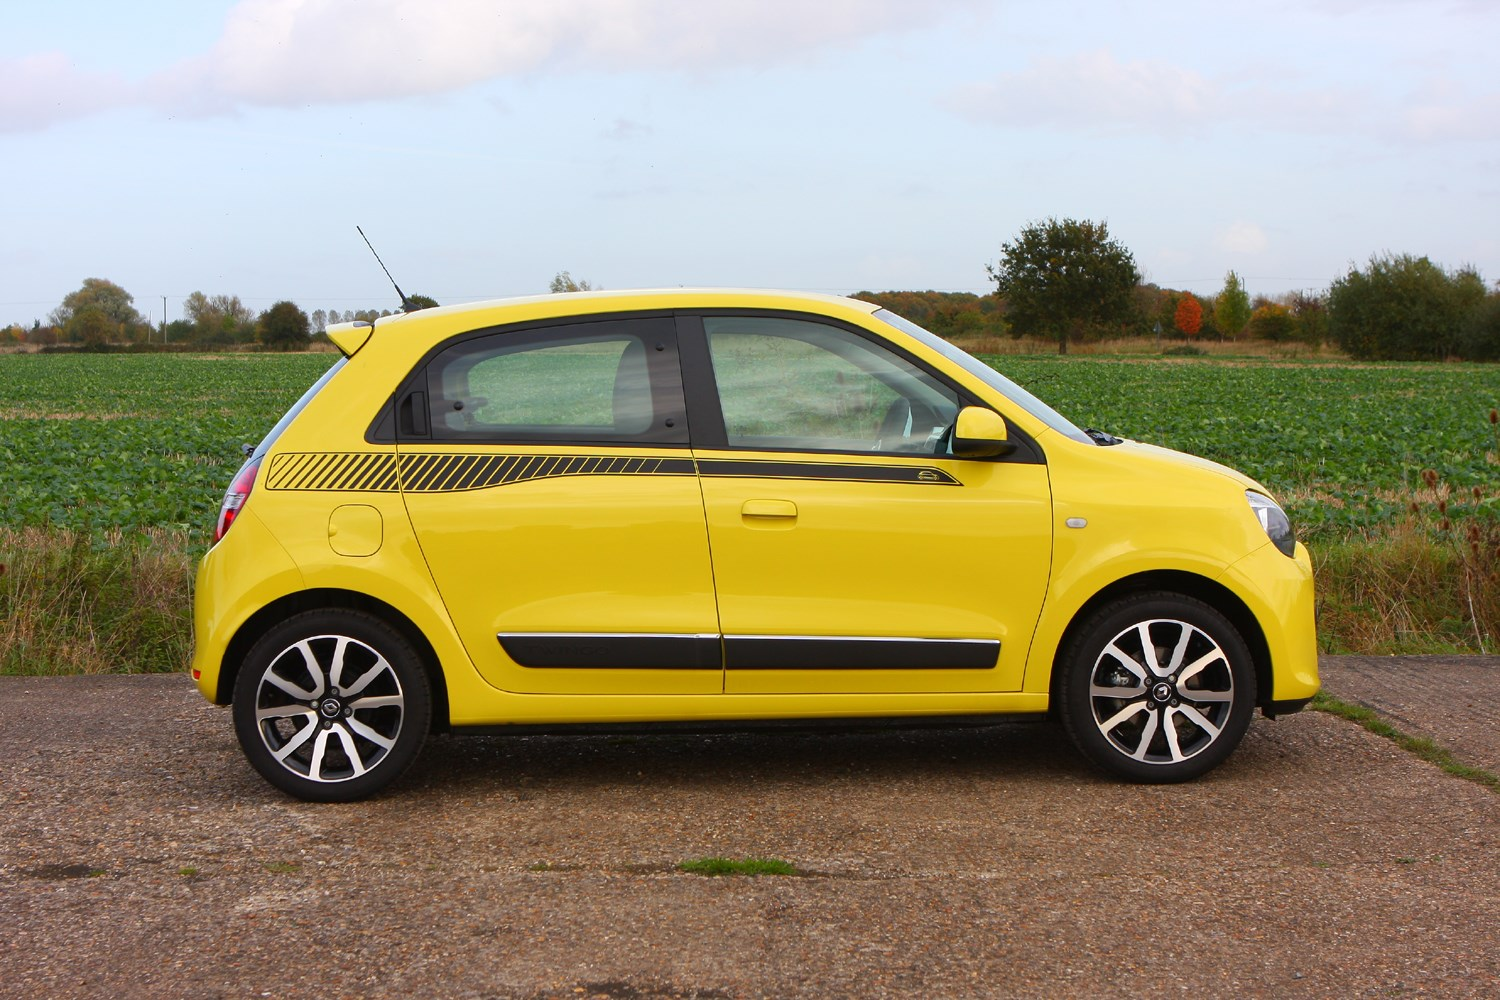 Renault Twingo Used Cars